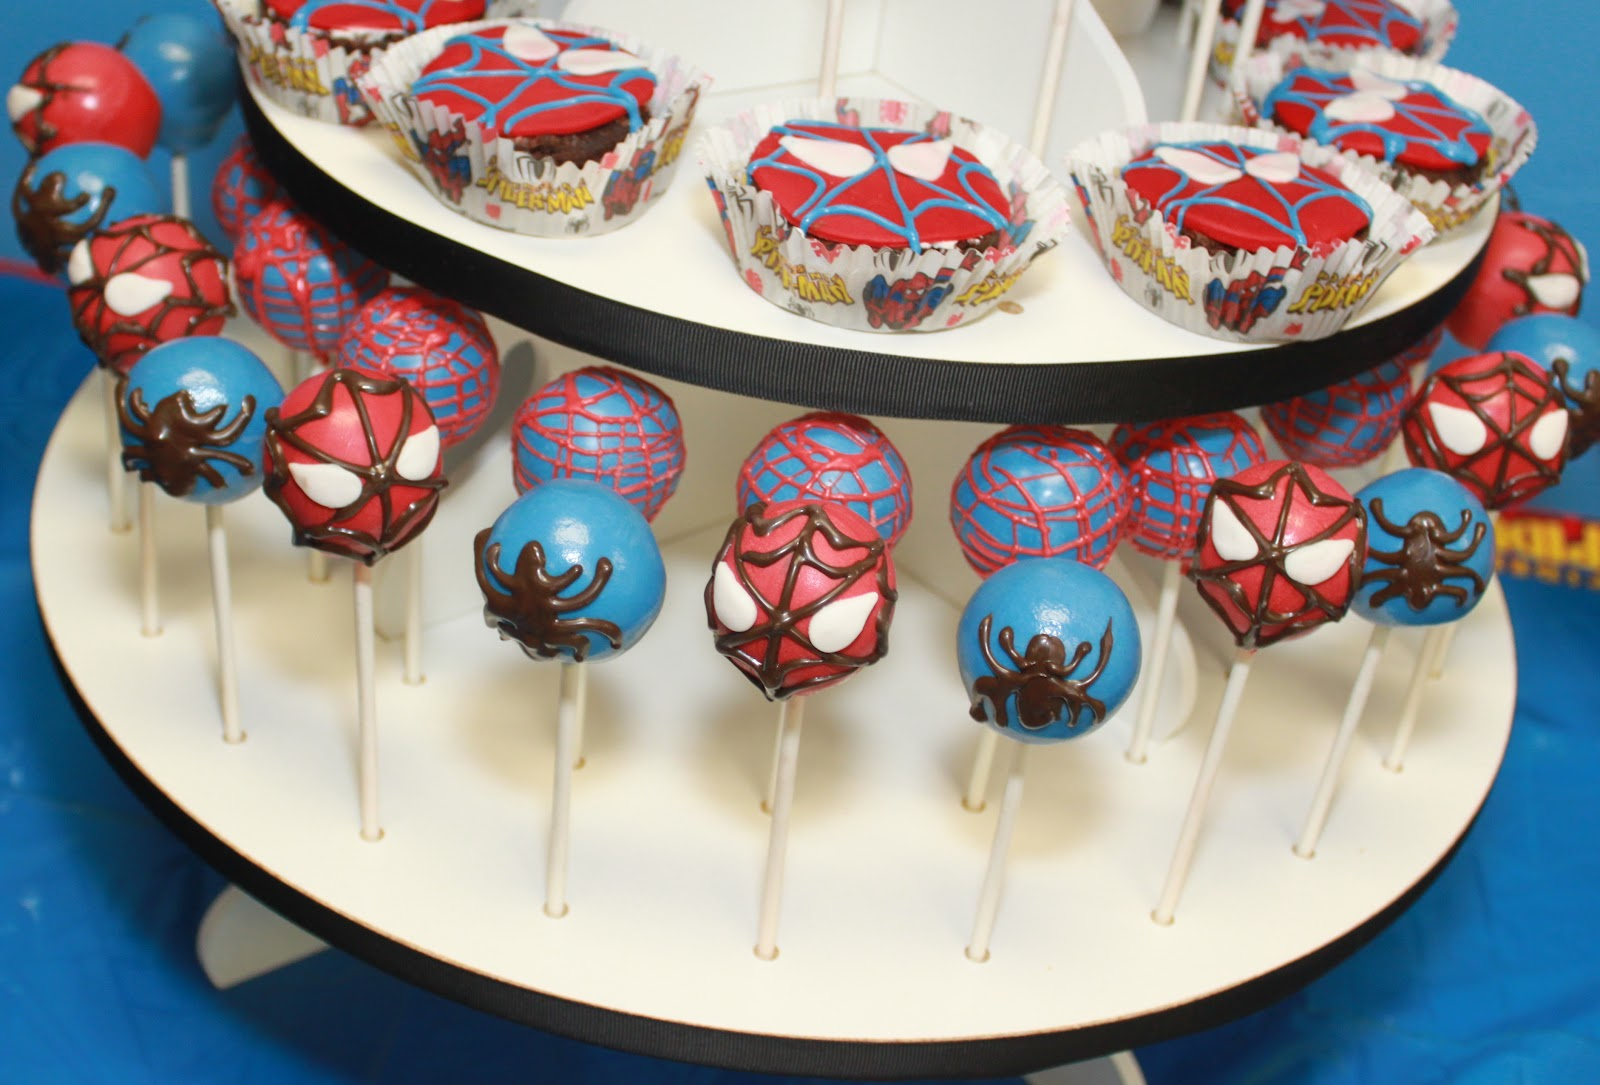 The Cake Bomb Cake Pops For All Occasions Birthday Cake